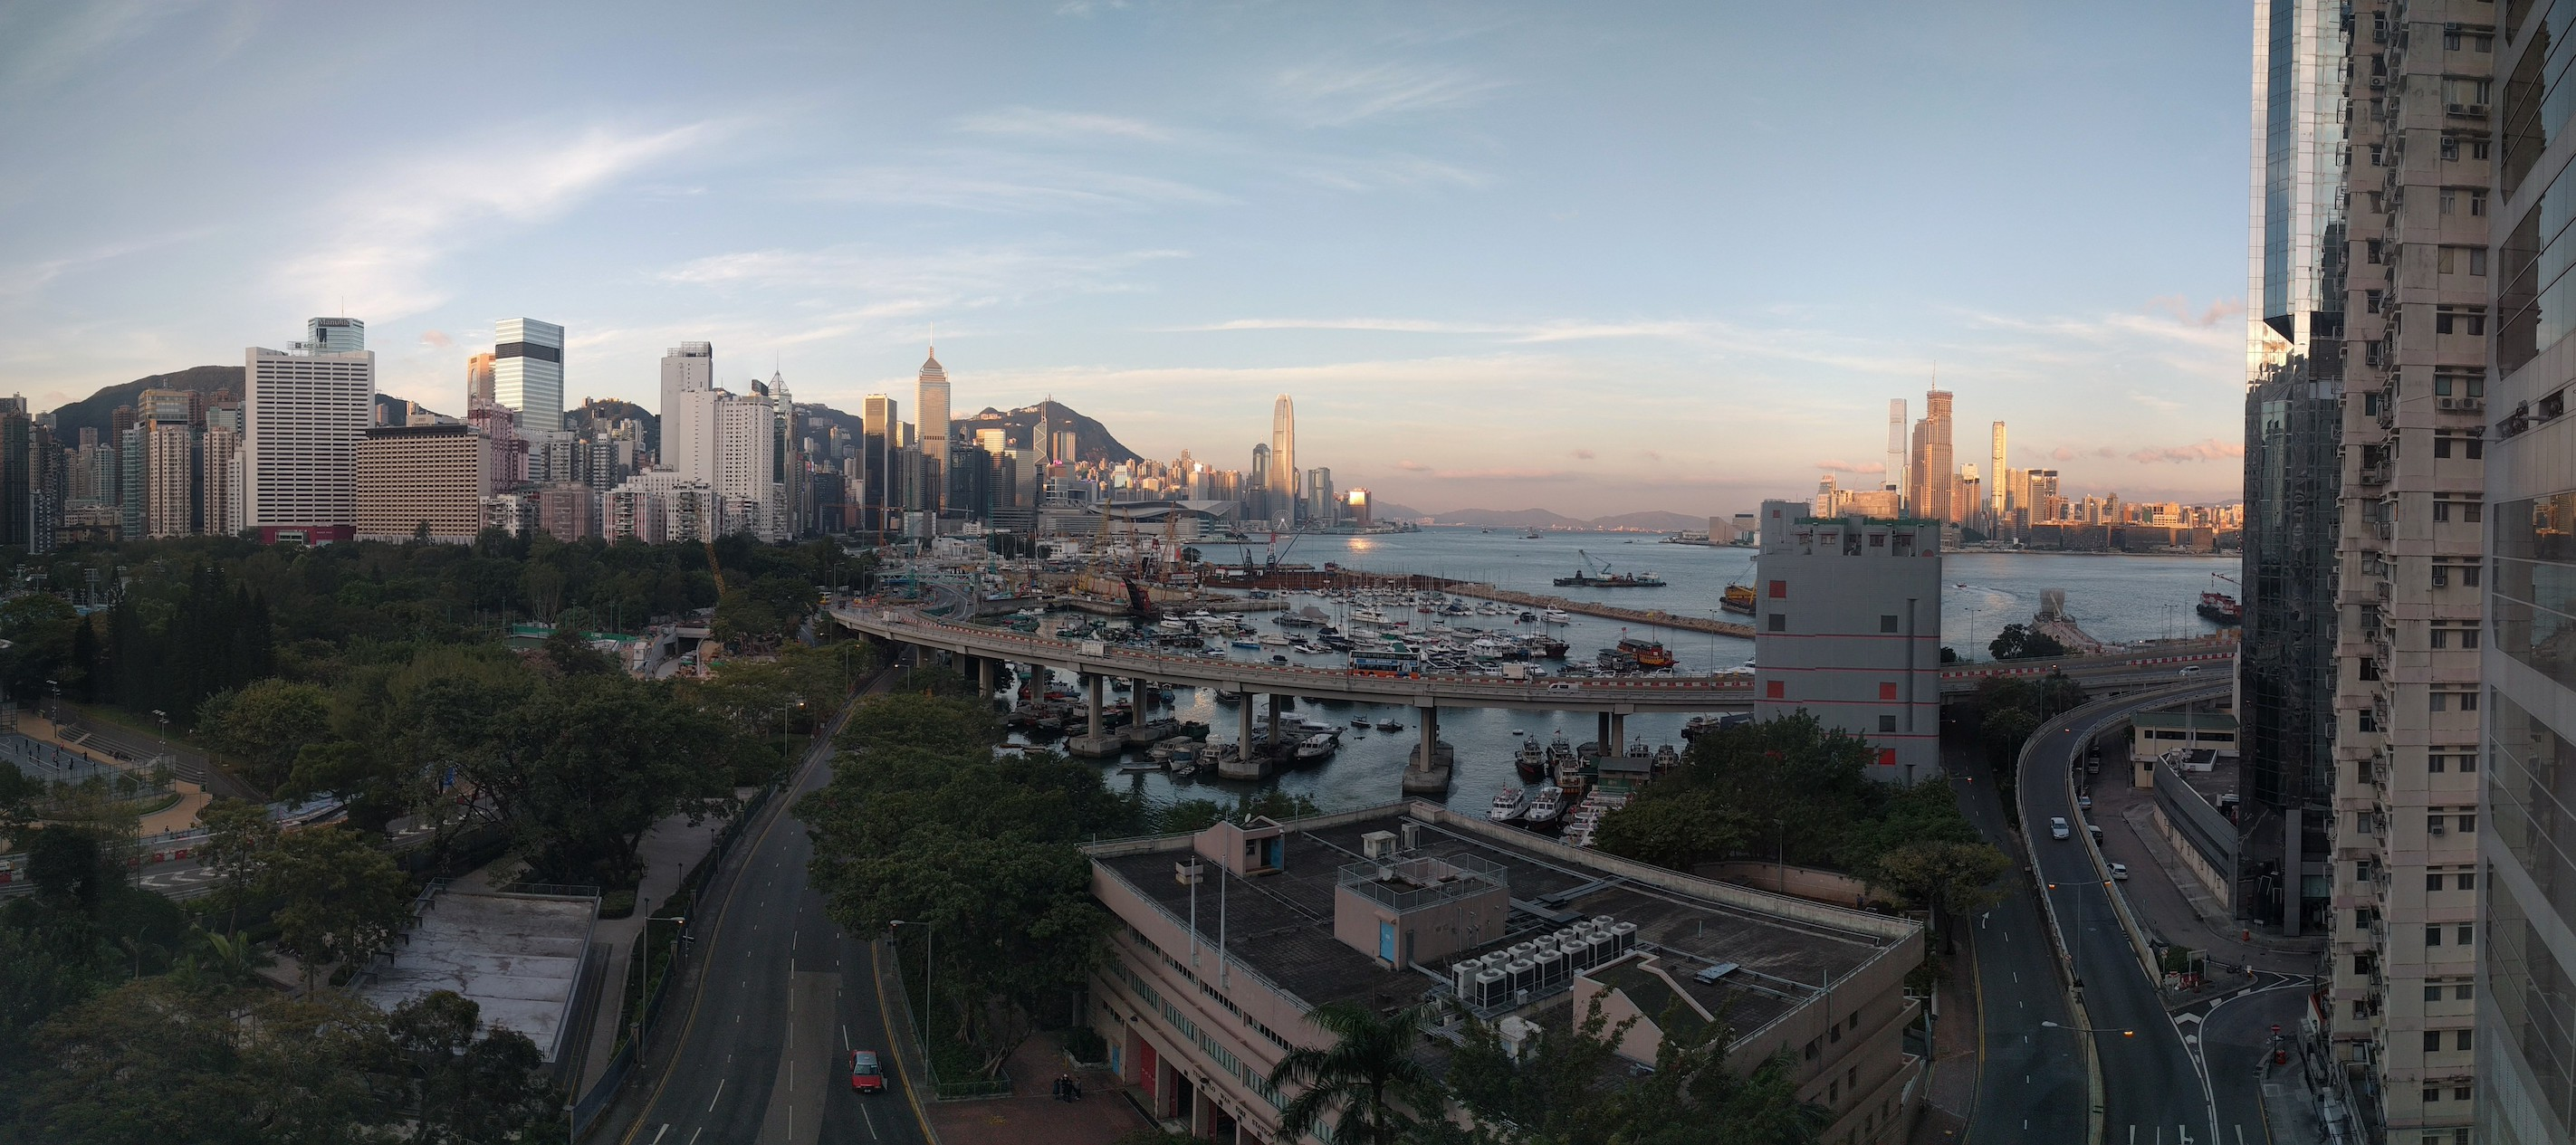 We were welcomed at 6am with a beautiful Sunrise over Hong Kong Harbour